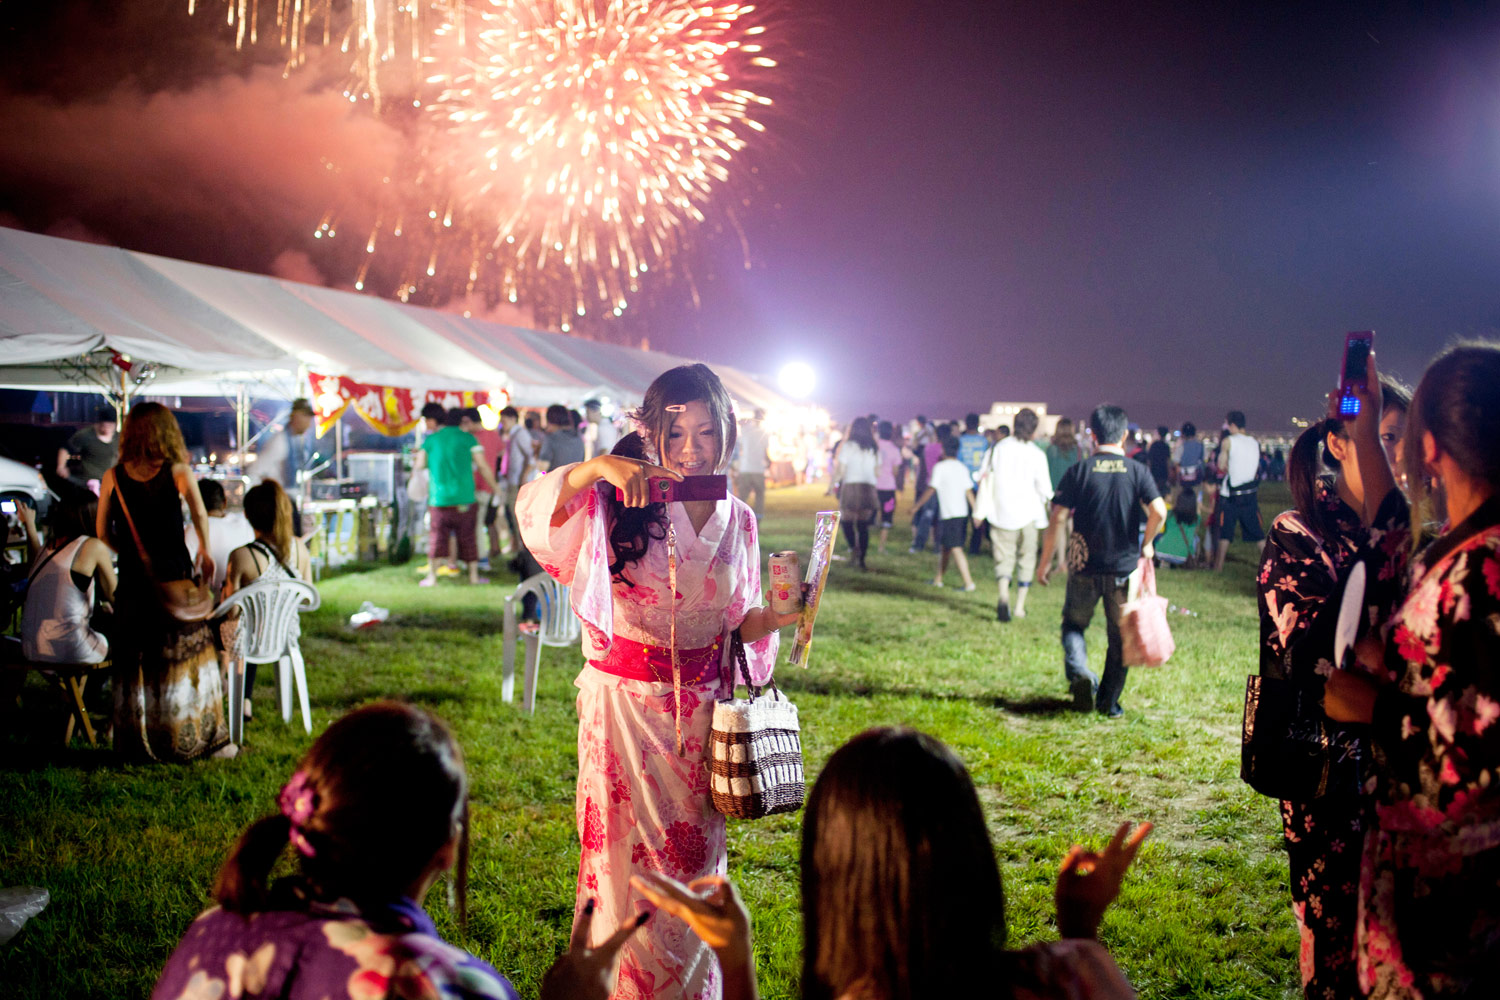 Girls photograph each other during the memorial fireworks display in Soma, August 13, 2011.